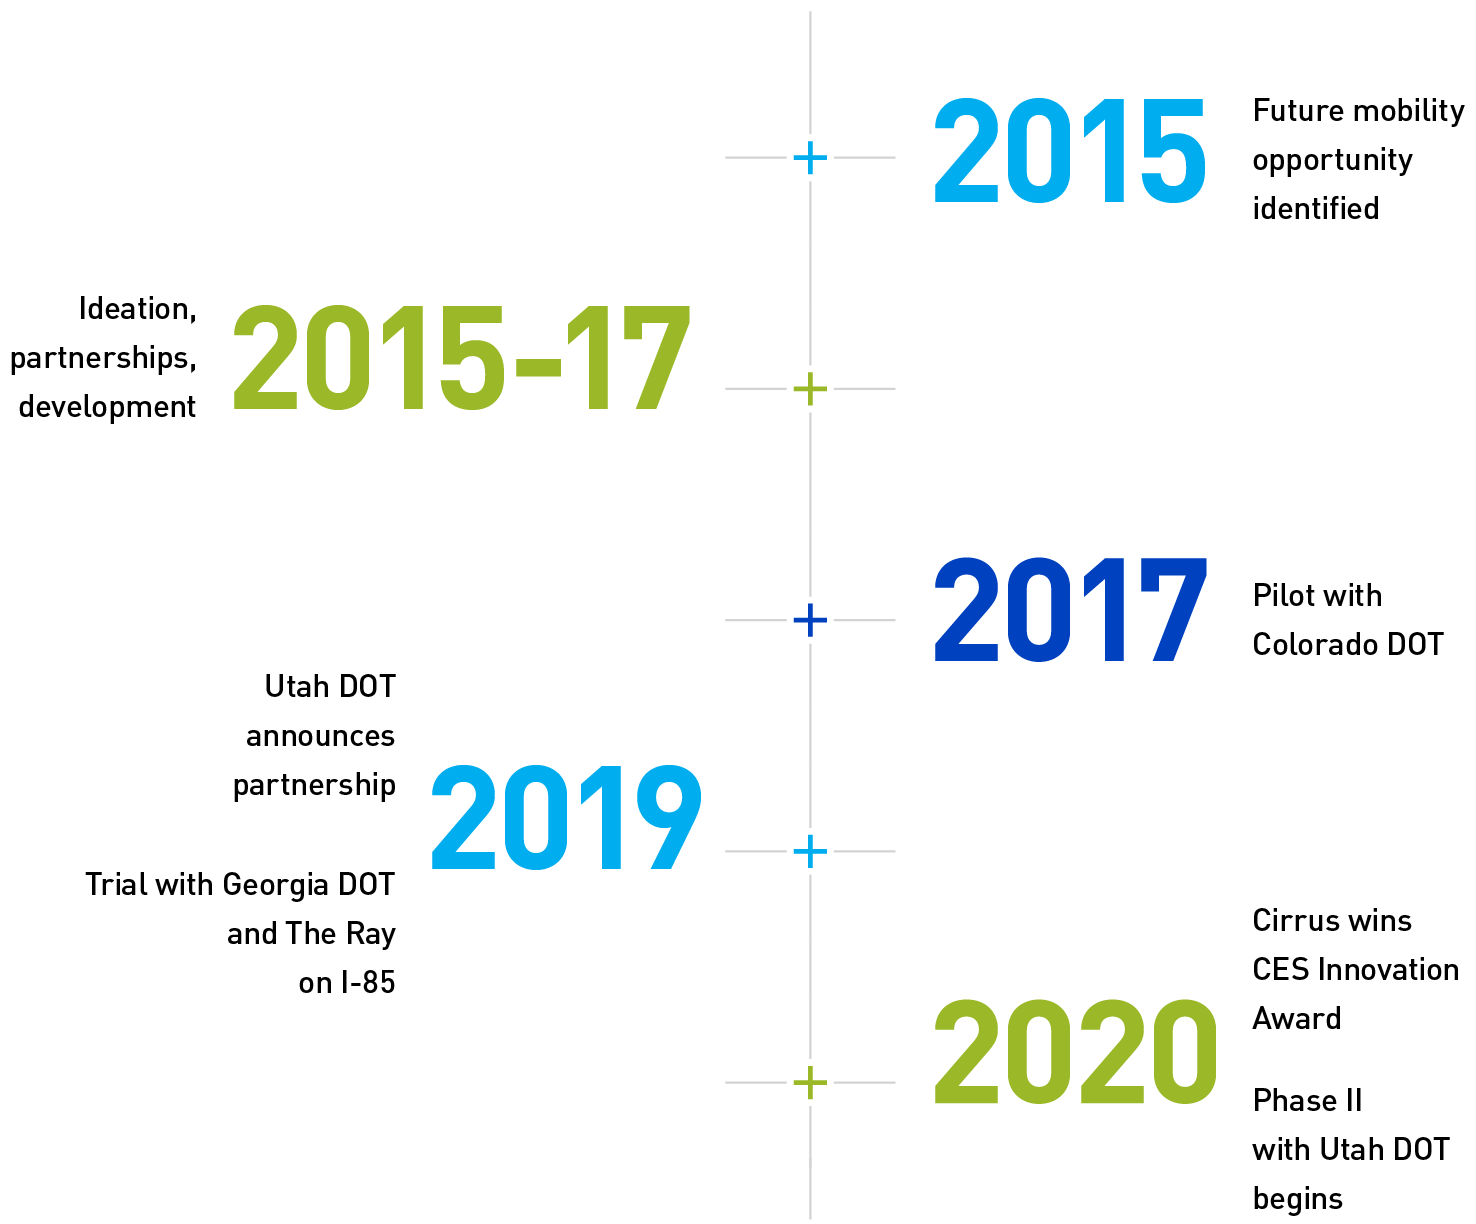 From 2015 to 2020, Cirrus has grown from an idea to an award-winning V2X platform